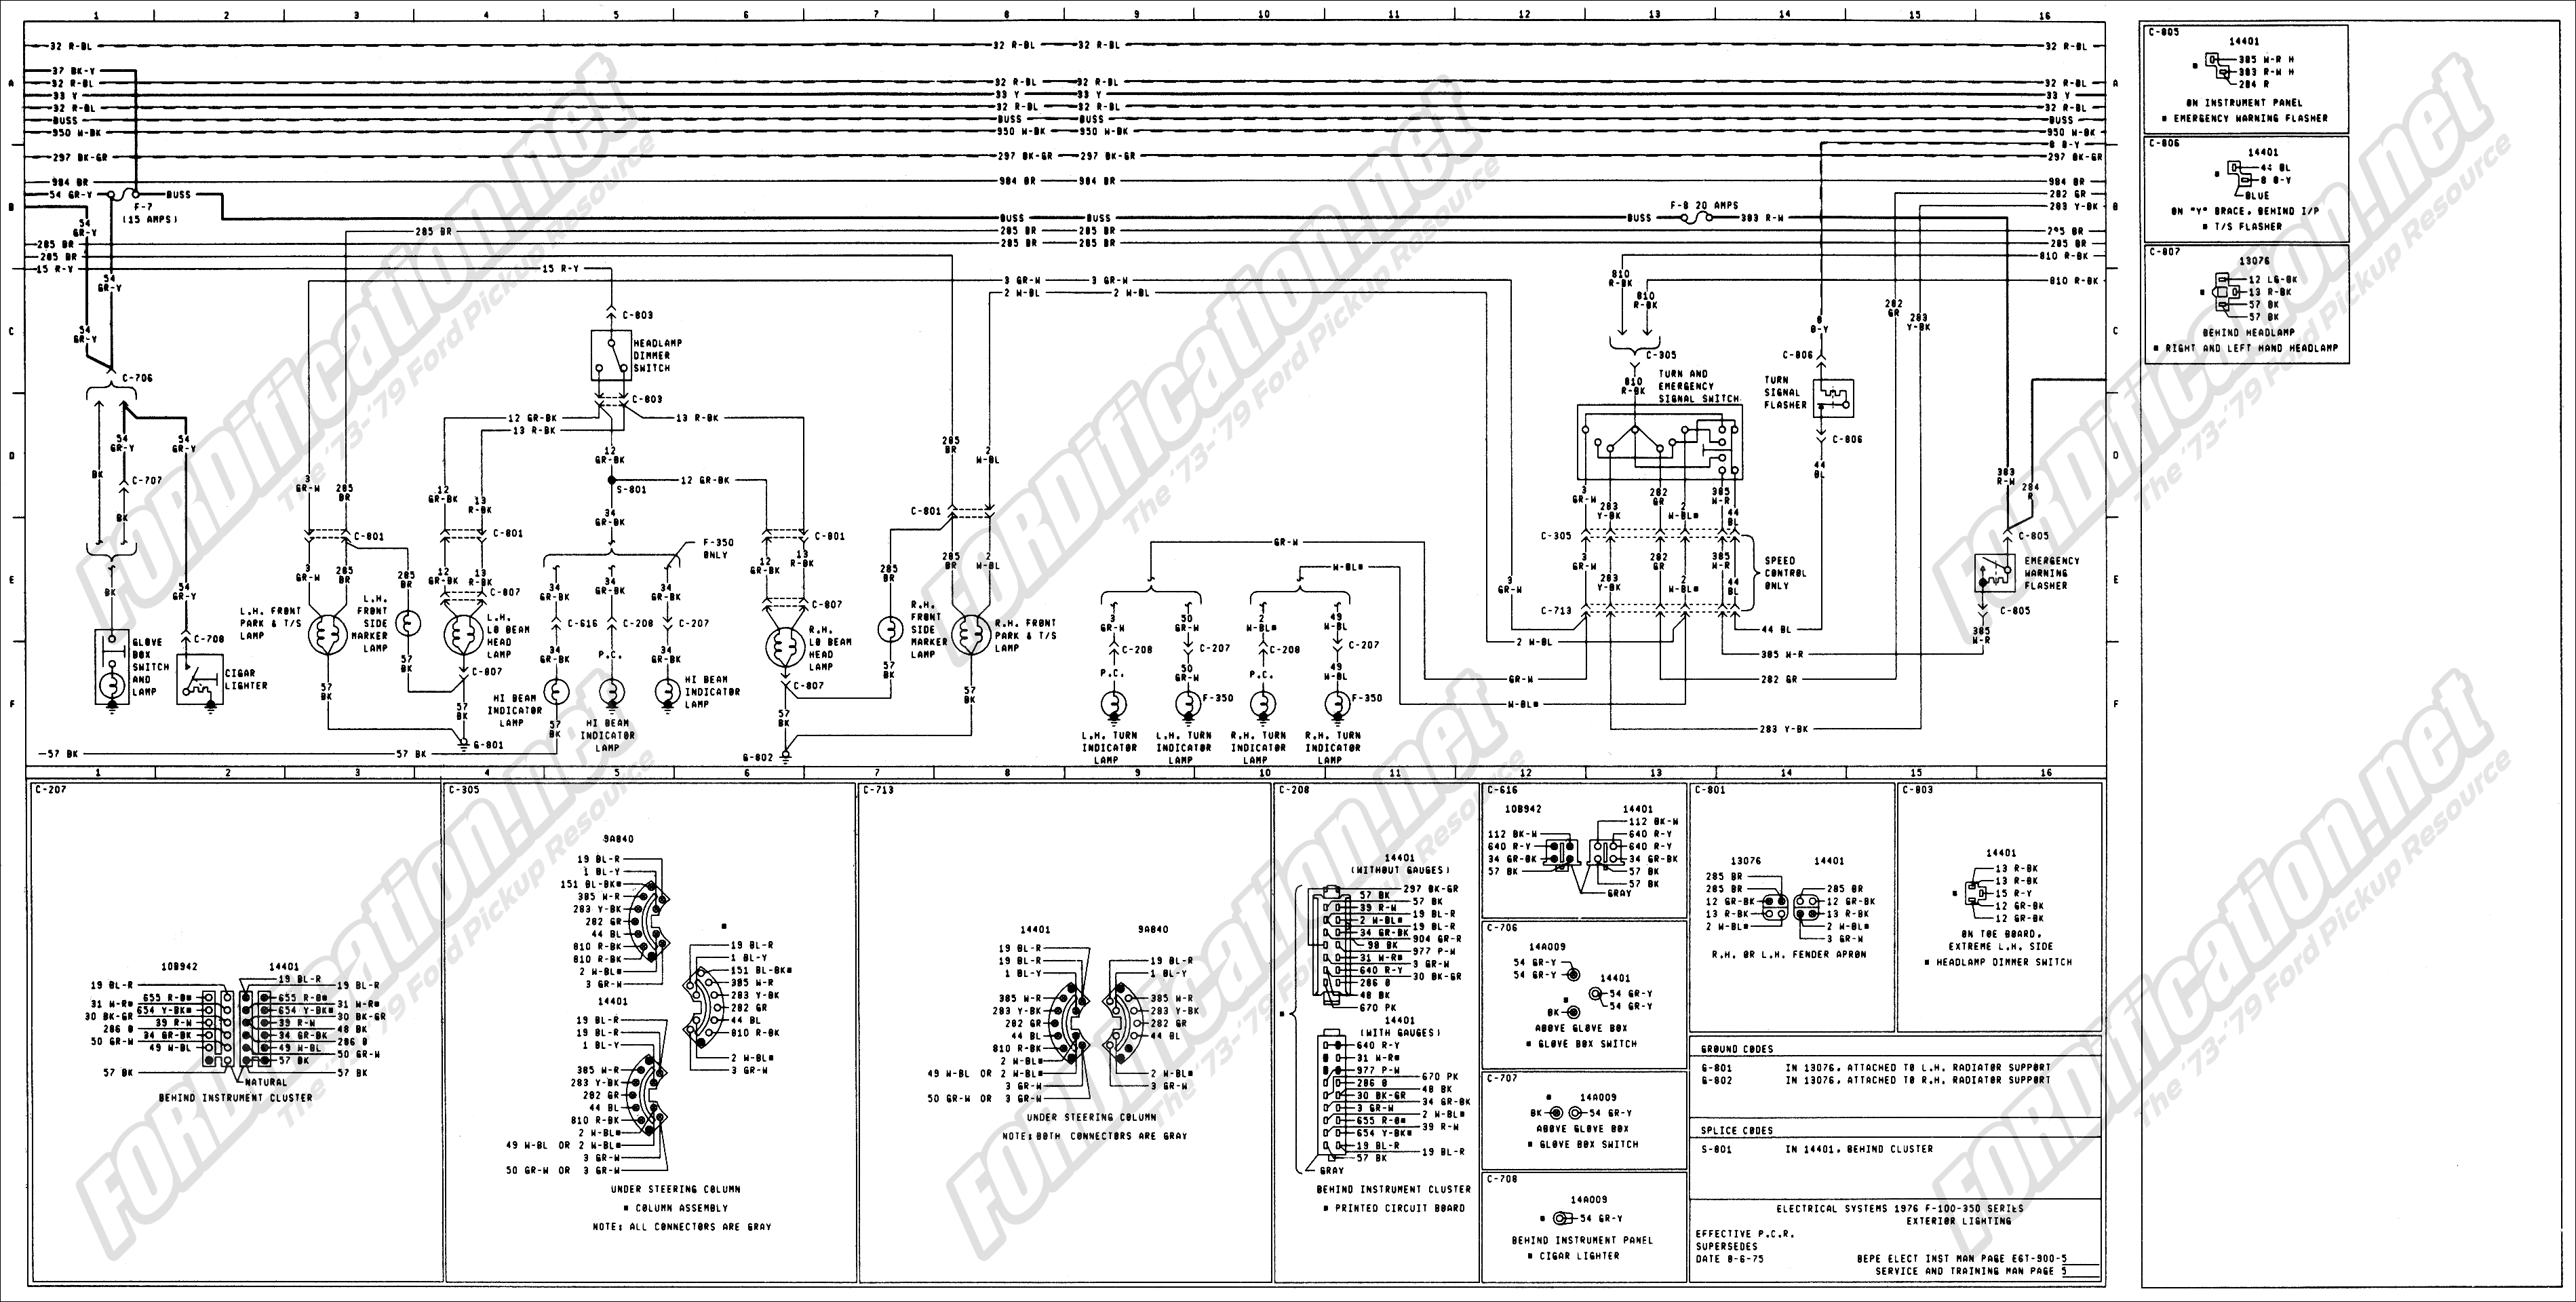 wiring_76master_5of9 1983 ford f100 wiring diagram wiring diagram simonand  at mifinder.co